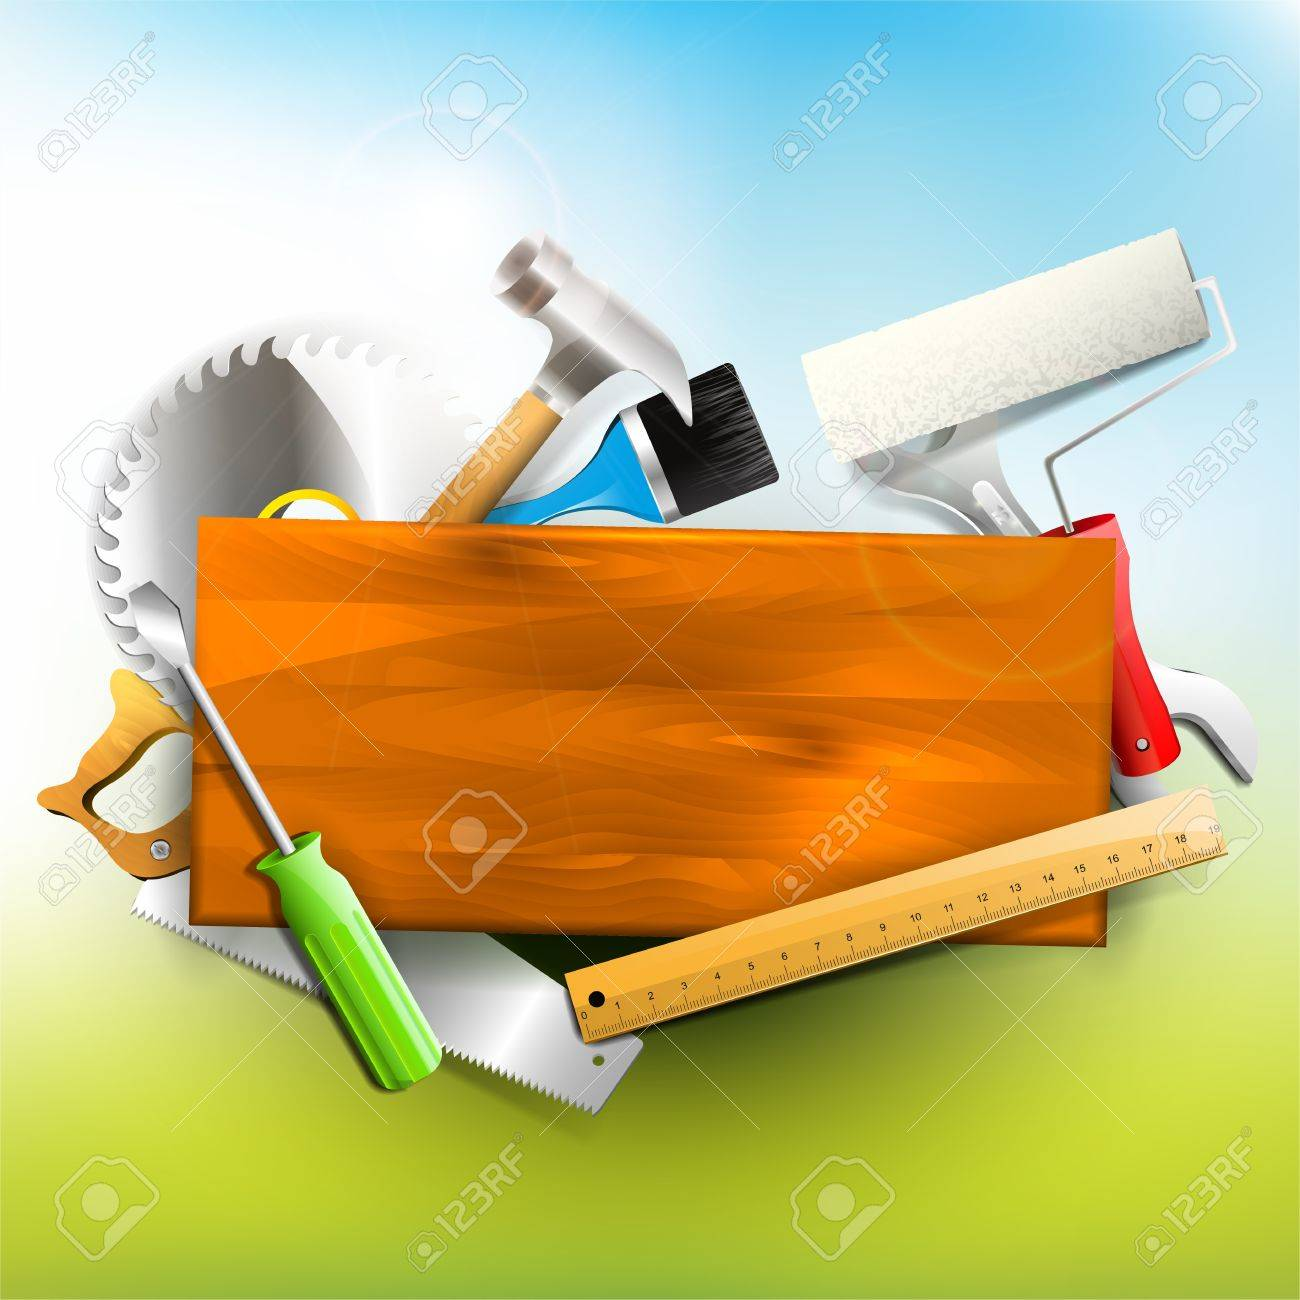 Hand tools and empty chalkboard - Carpentry background Stock Vector - 21910747